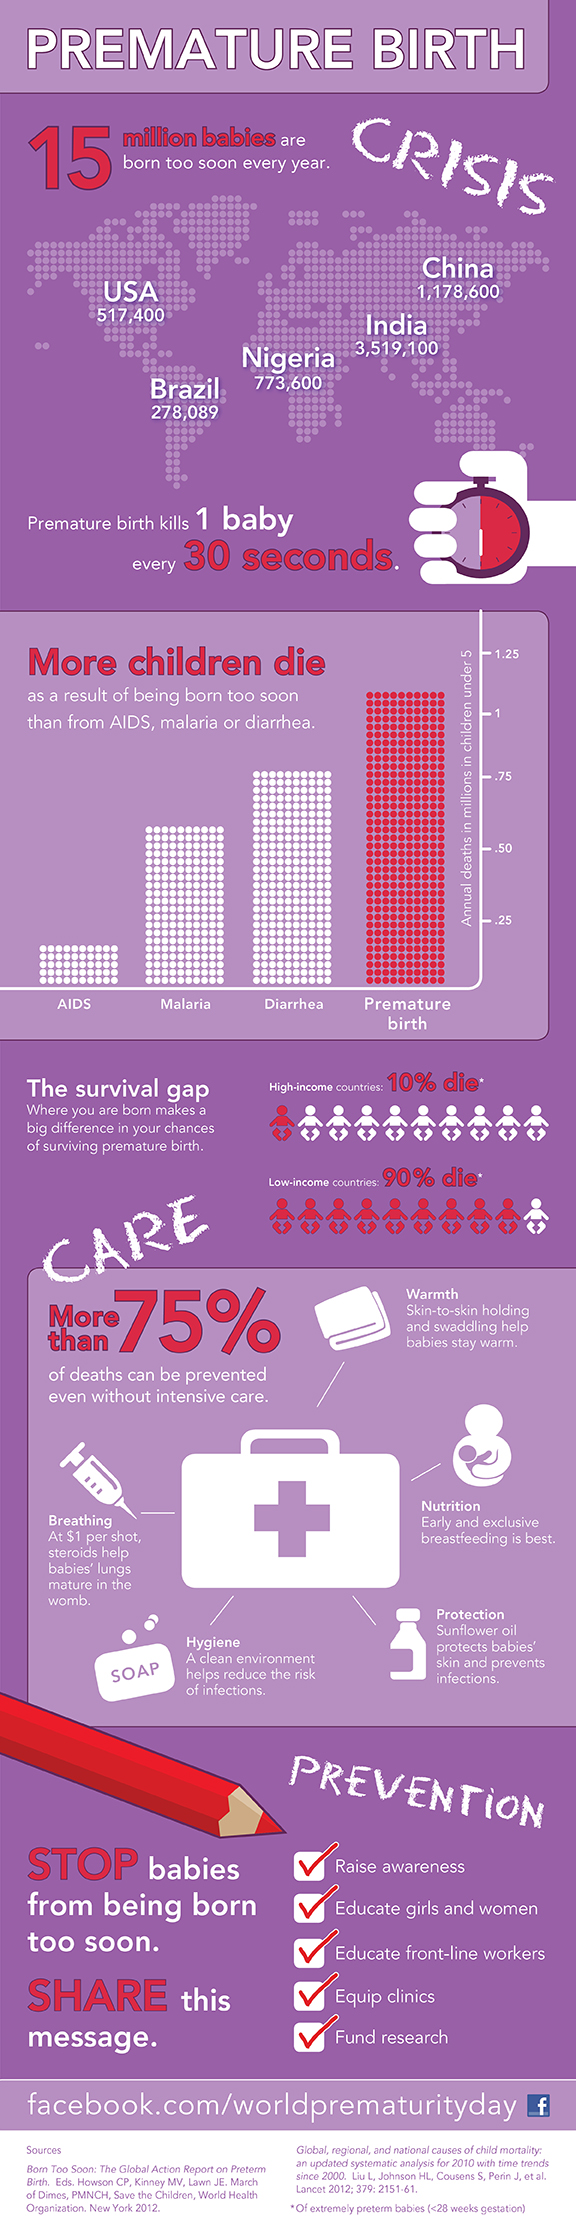 world prematurity day infographic